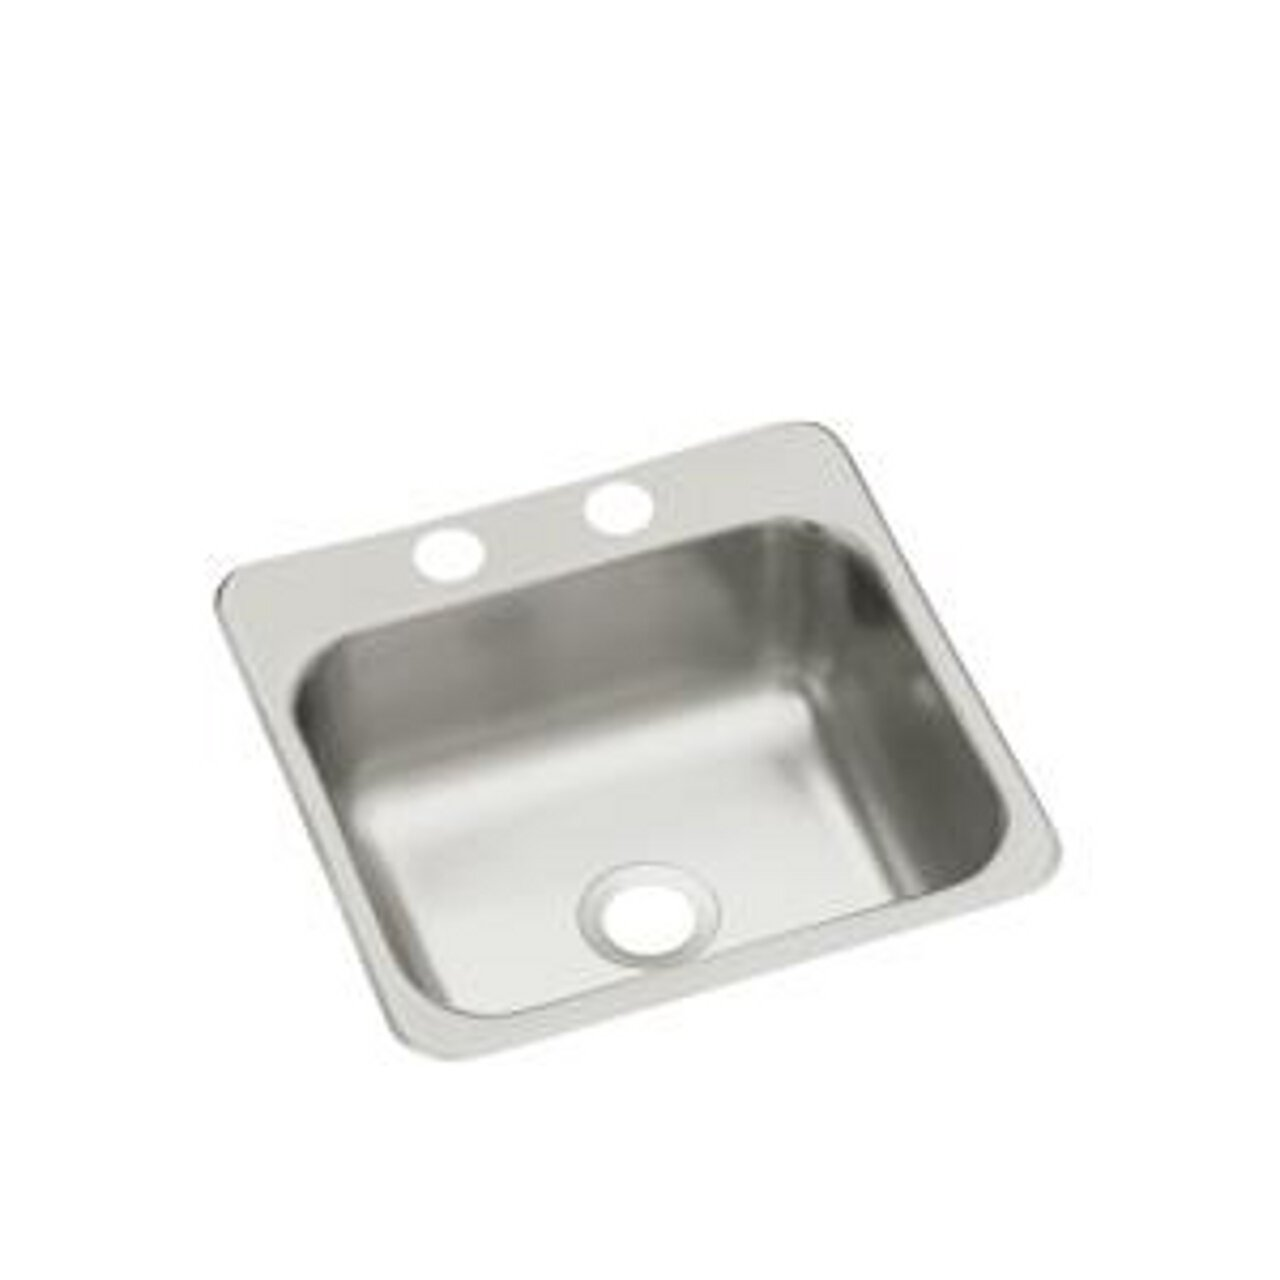 STERLING B153B-2 Secondary Sink 15-inch by 15-inch Top-mount Single Bowl Bar Sink, Stainless Steel